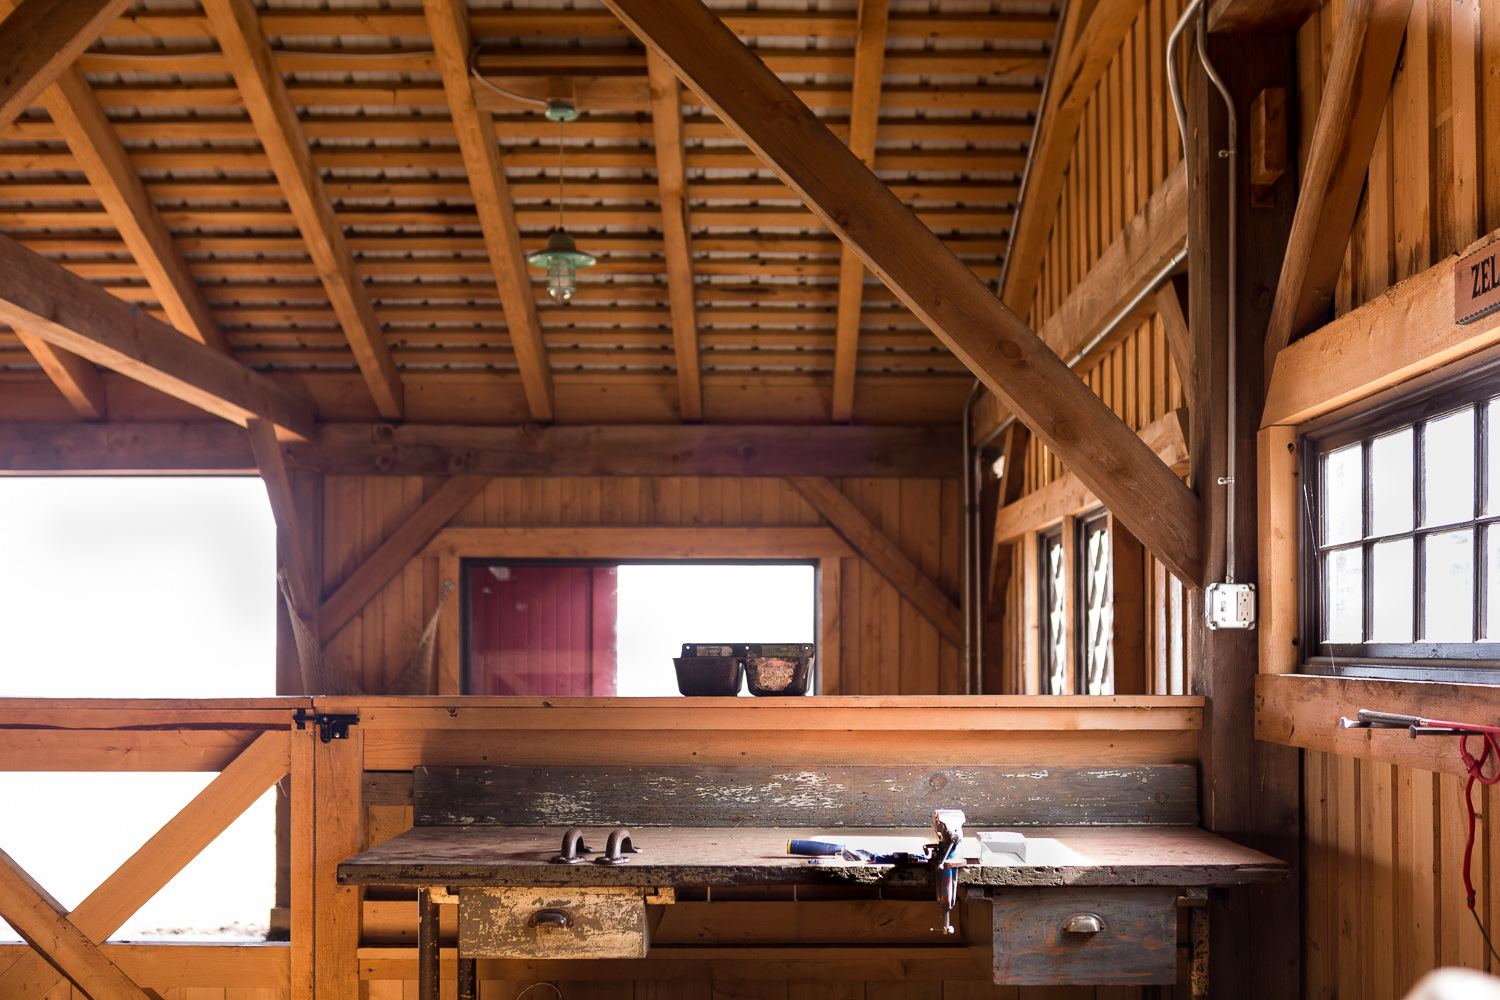 Interior architecture photo of barn built by New Frameworks Natural Building in Middlesex Vermont